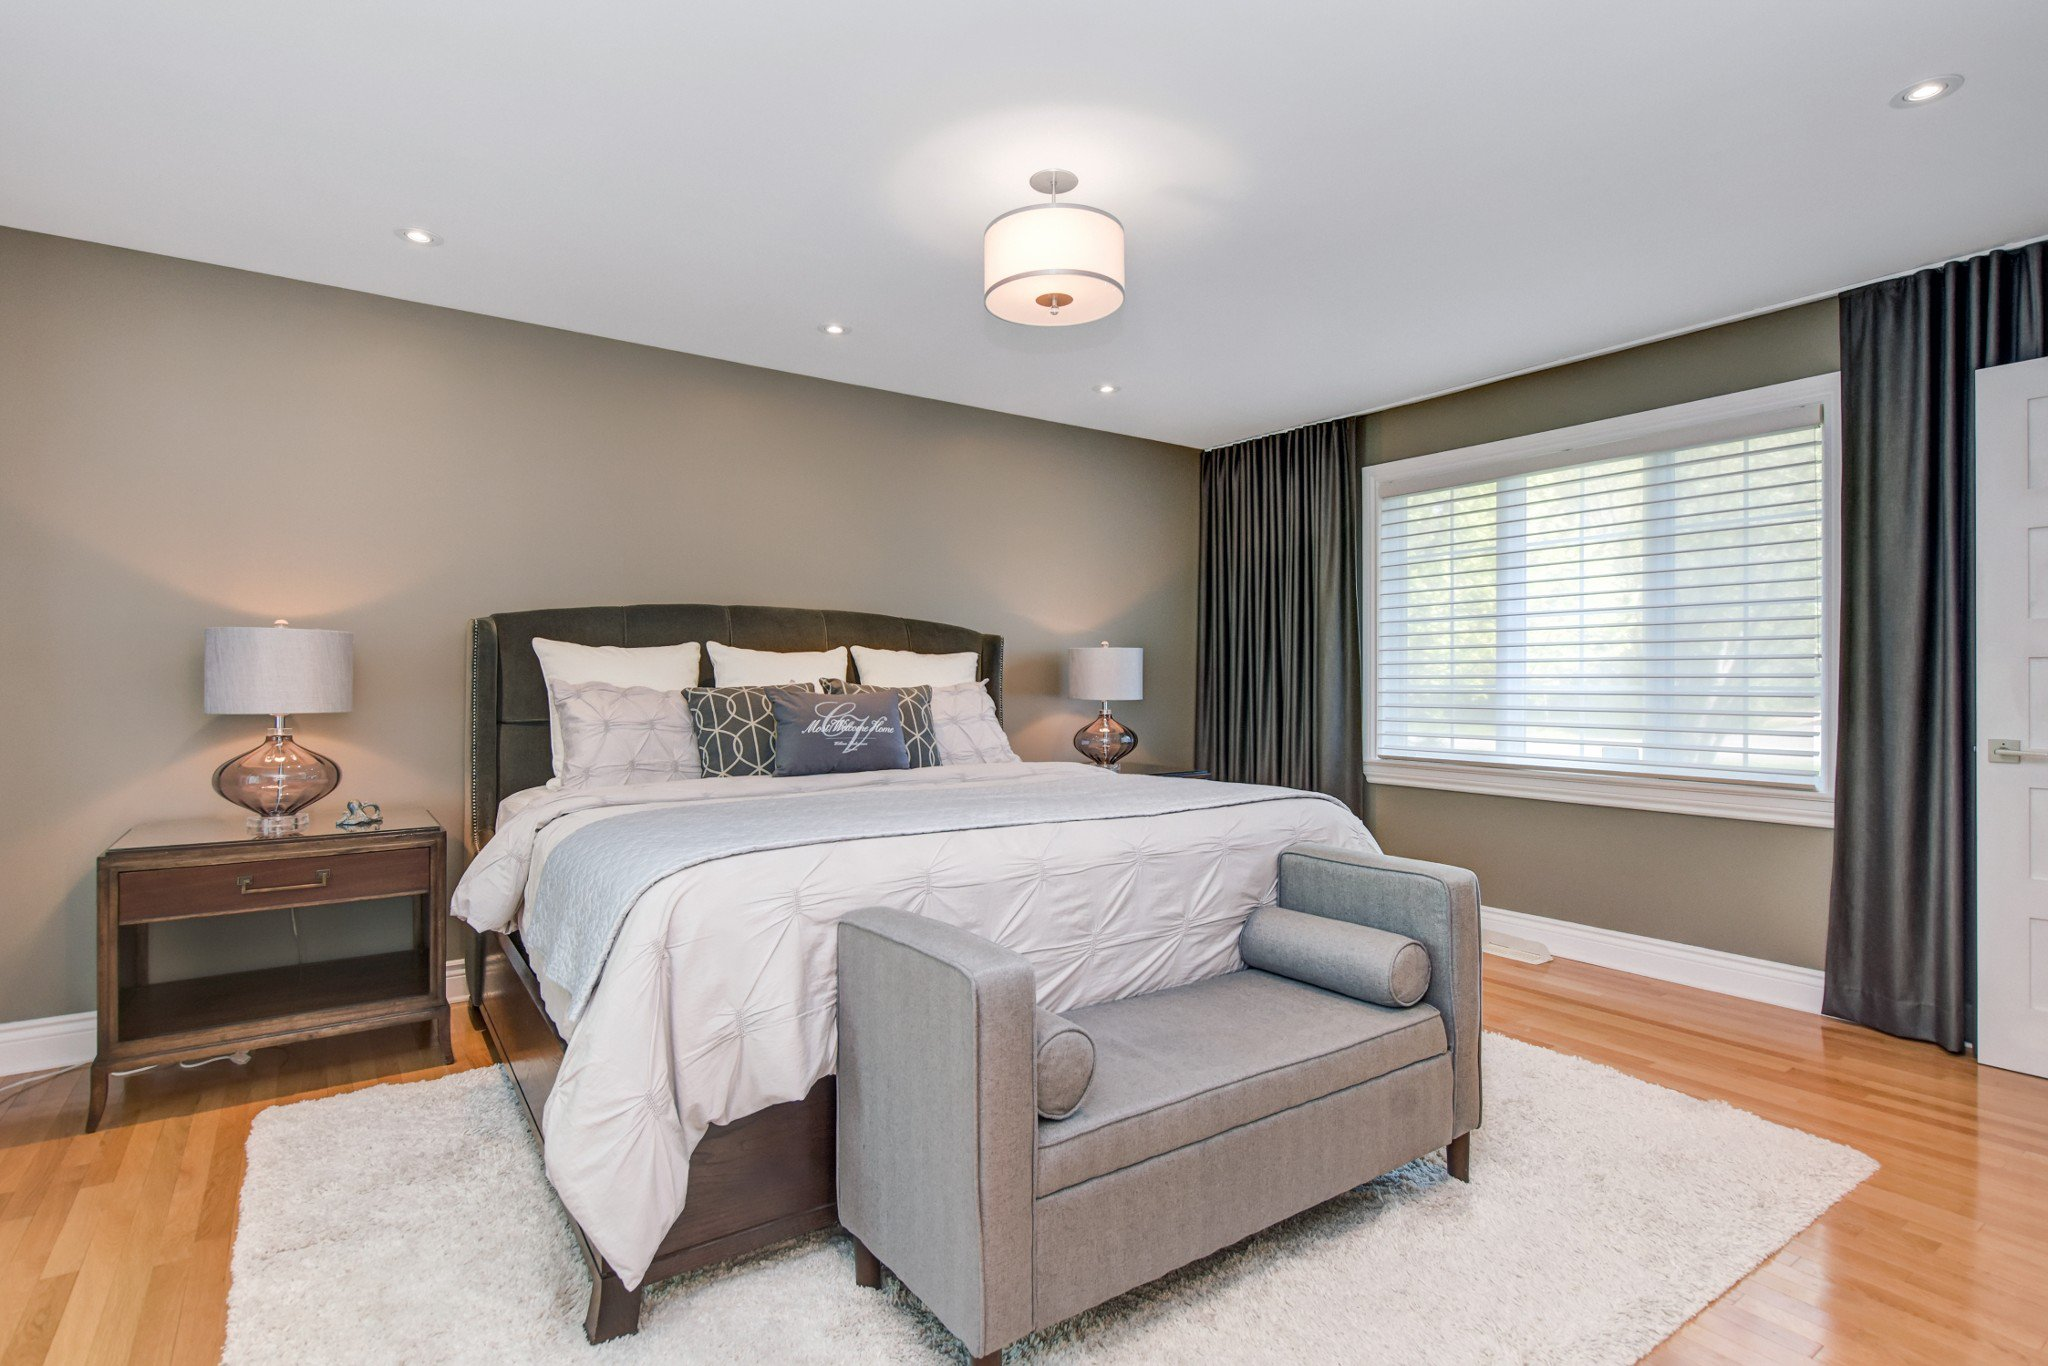 Photo 39: Photos: 1490 REINDEER WAY.: Greely House for sale (Ottawa)  : MLS®# 1109530